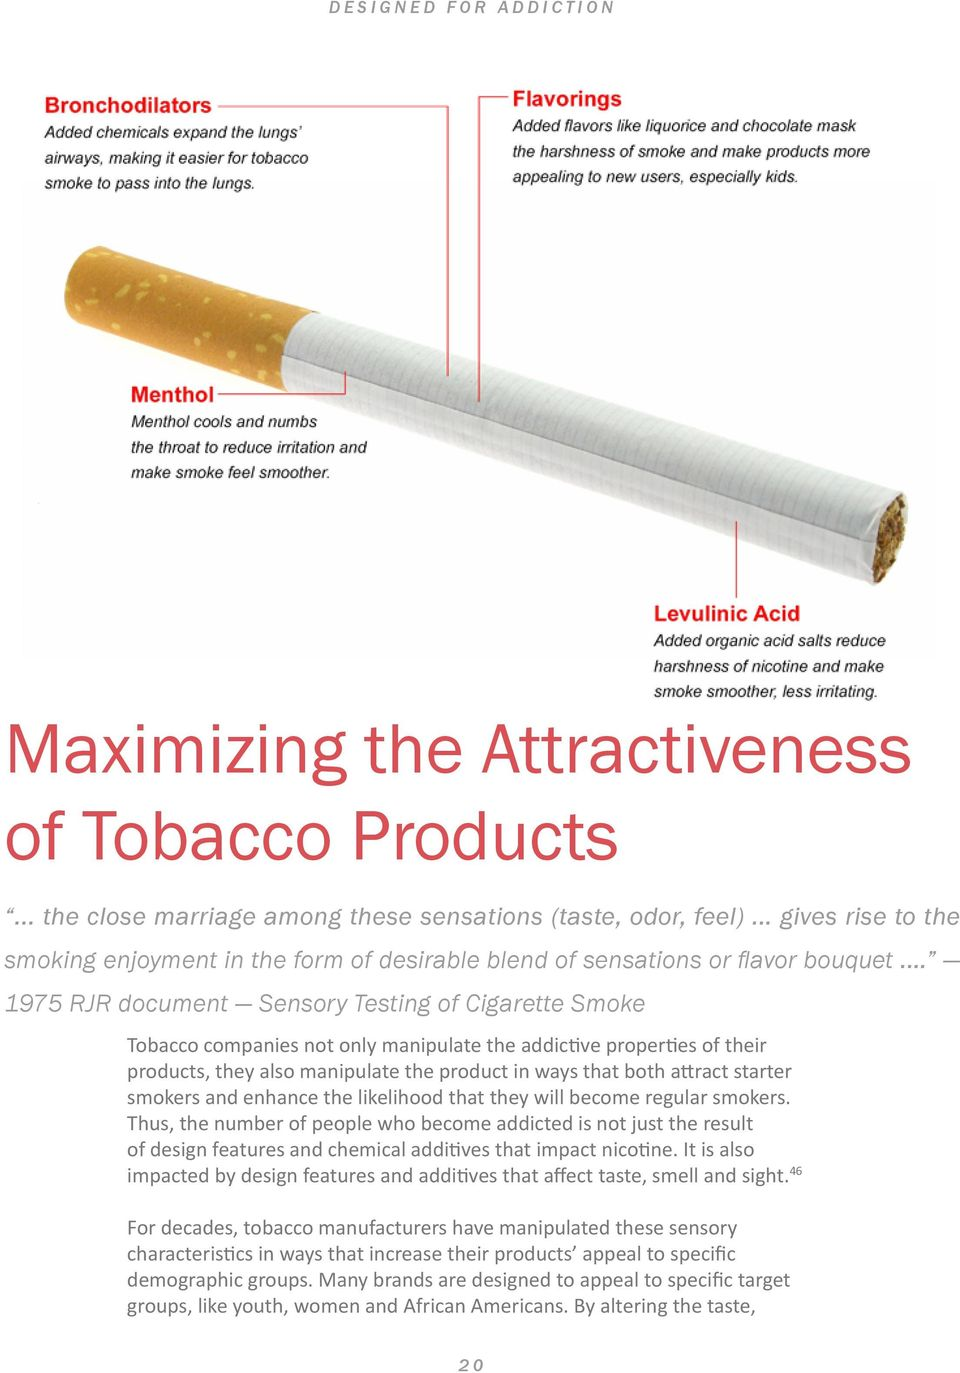 .. 1975 RJR document Sensory Testing of Cigarette Smoke Tobacco companies not only manipulate the addictive properties of their products, they also manipulate the product in ways that both attract